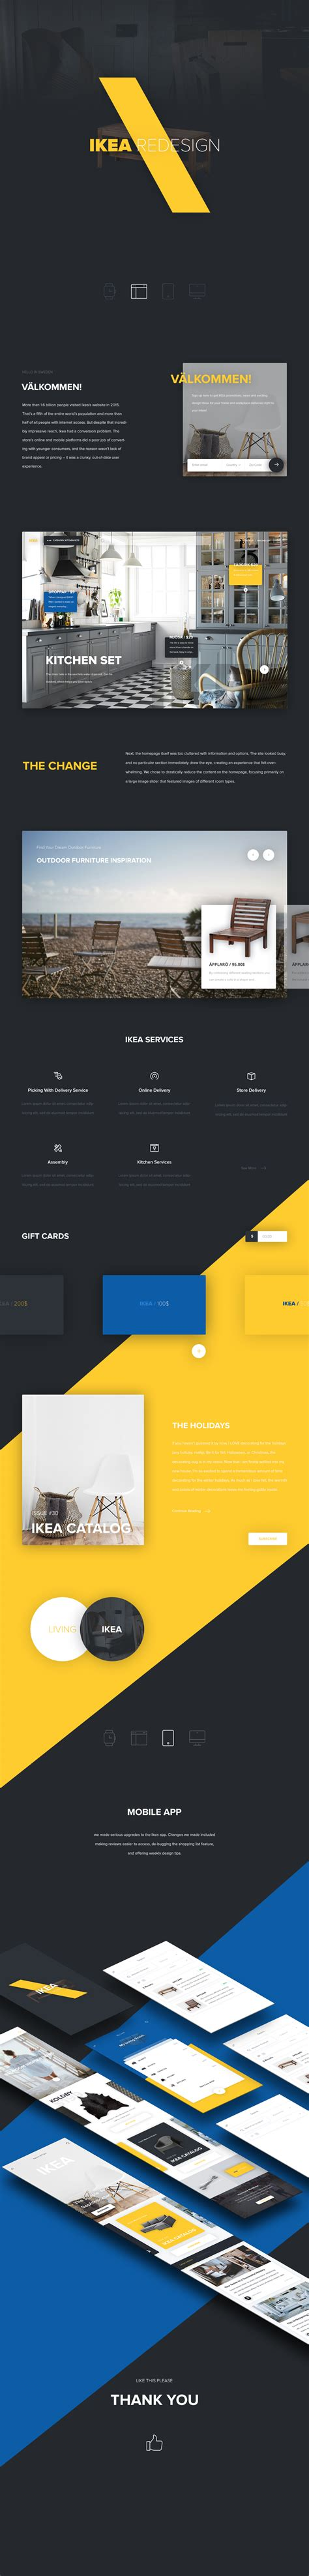 ikea app redesign concept on behance ikea redesign on behance